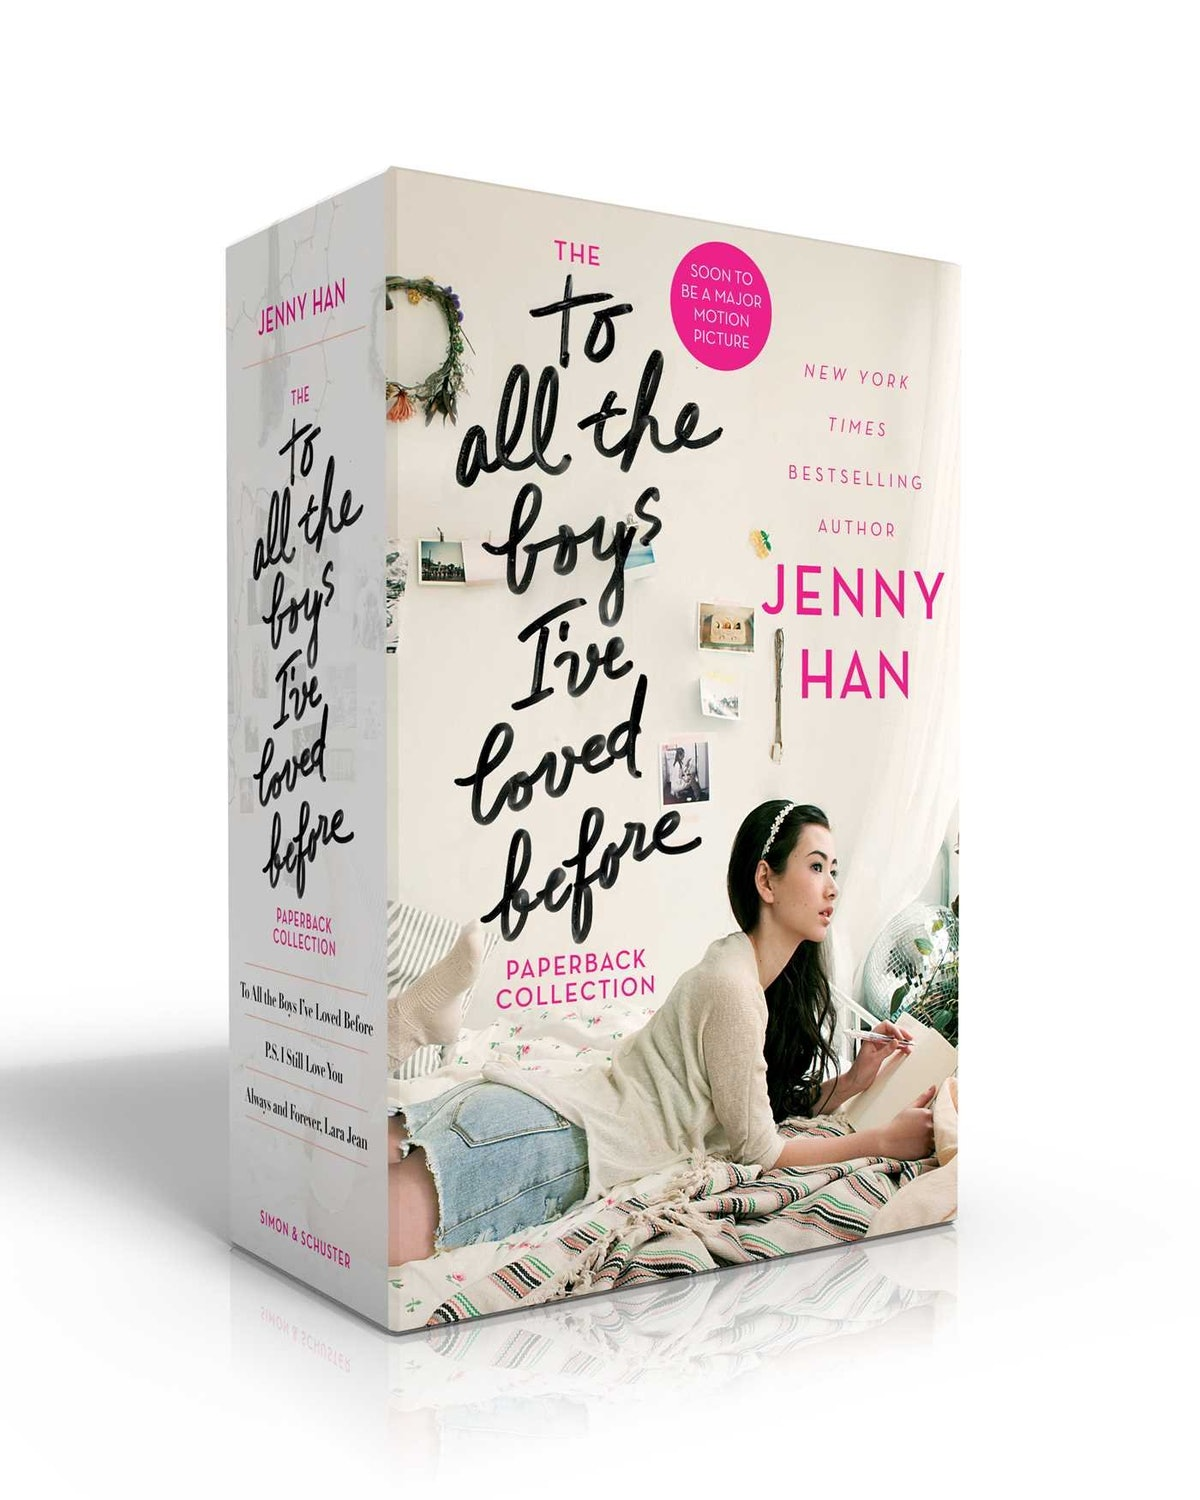 'To All The Boys I've Loved Before' Paperback Collection by Jenny Han